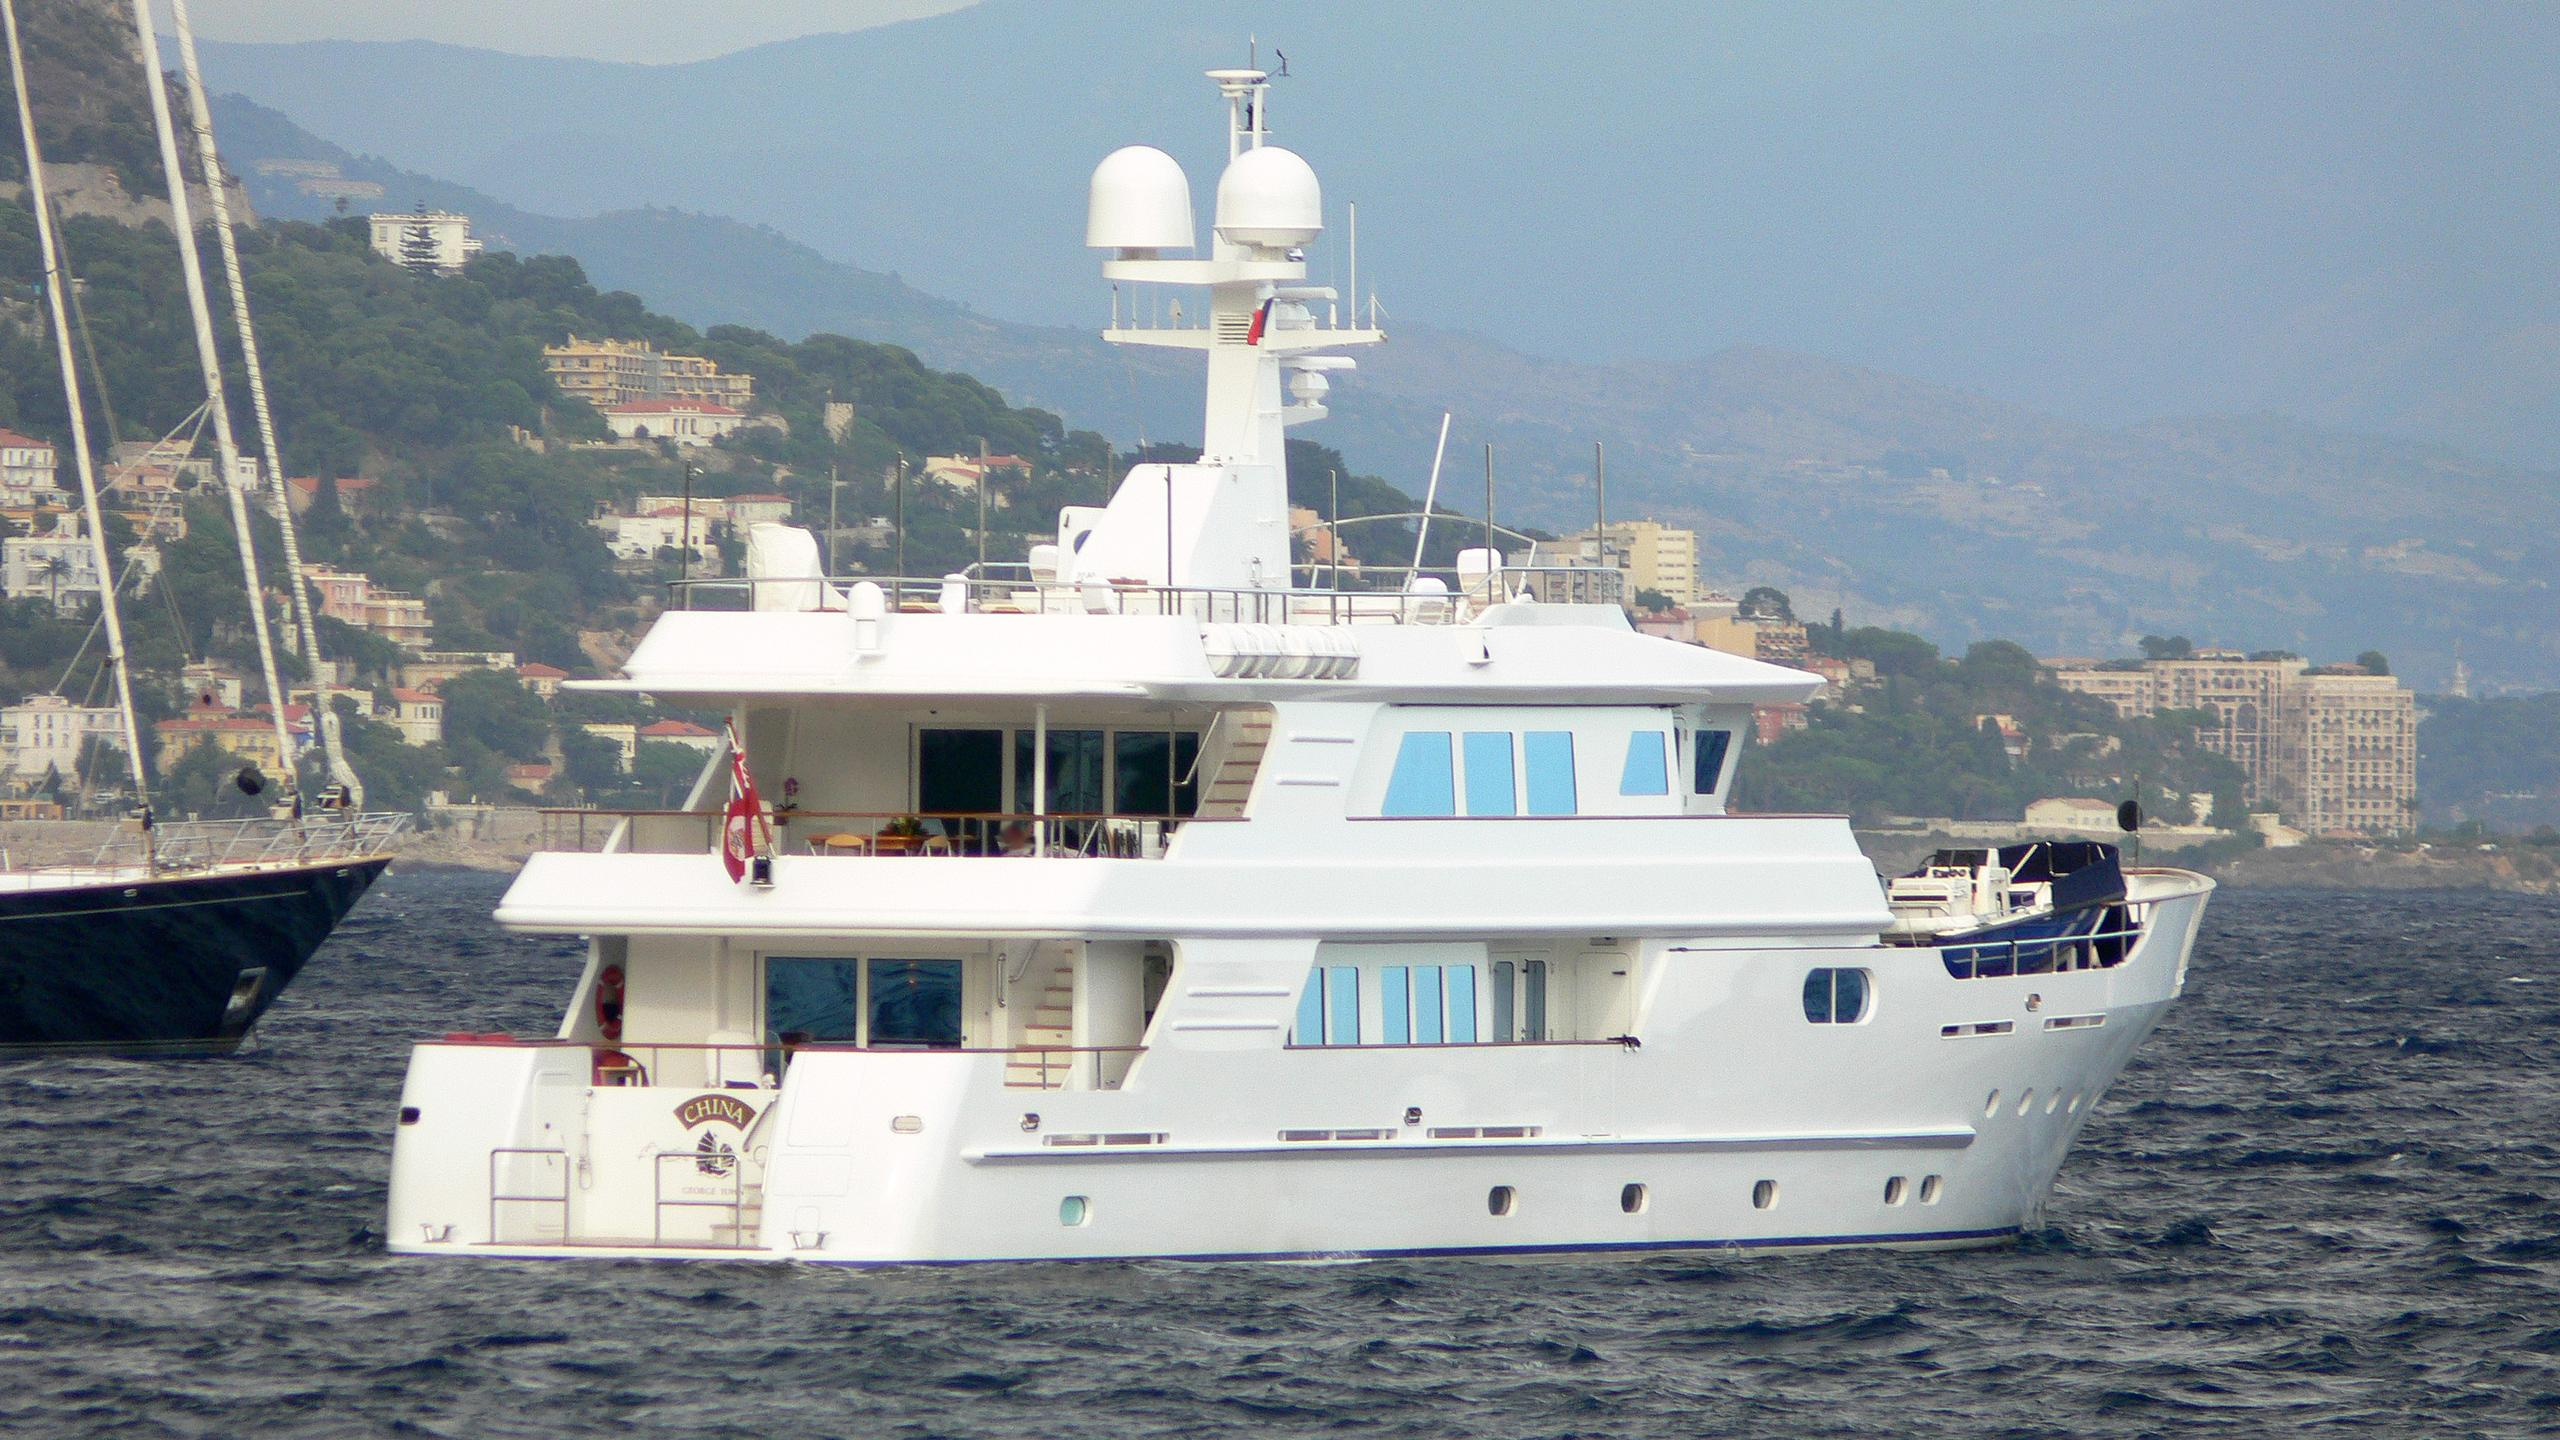 relentless-expedition-yacht-kingship-110-2006-34m-stern